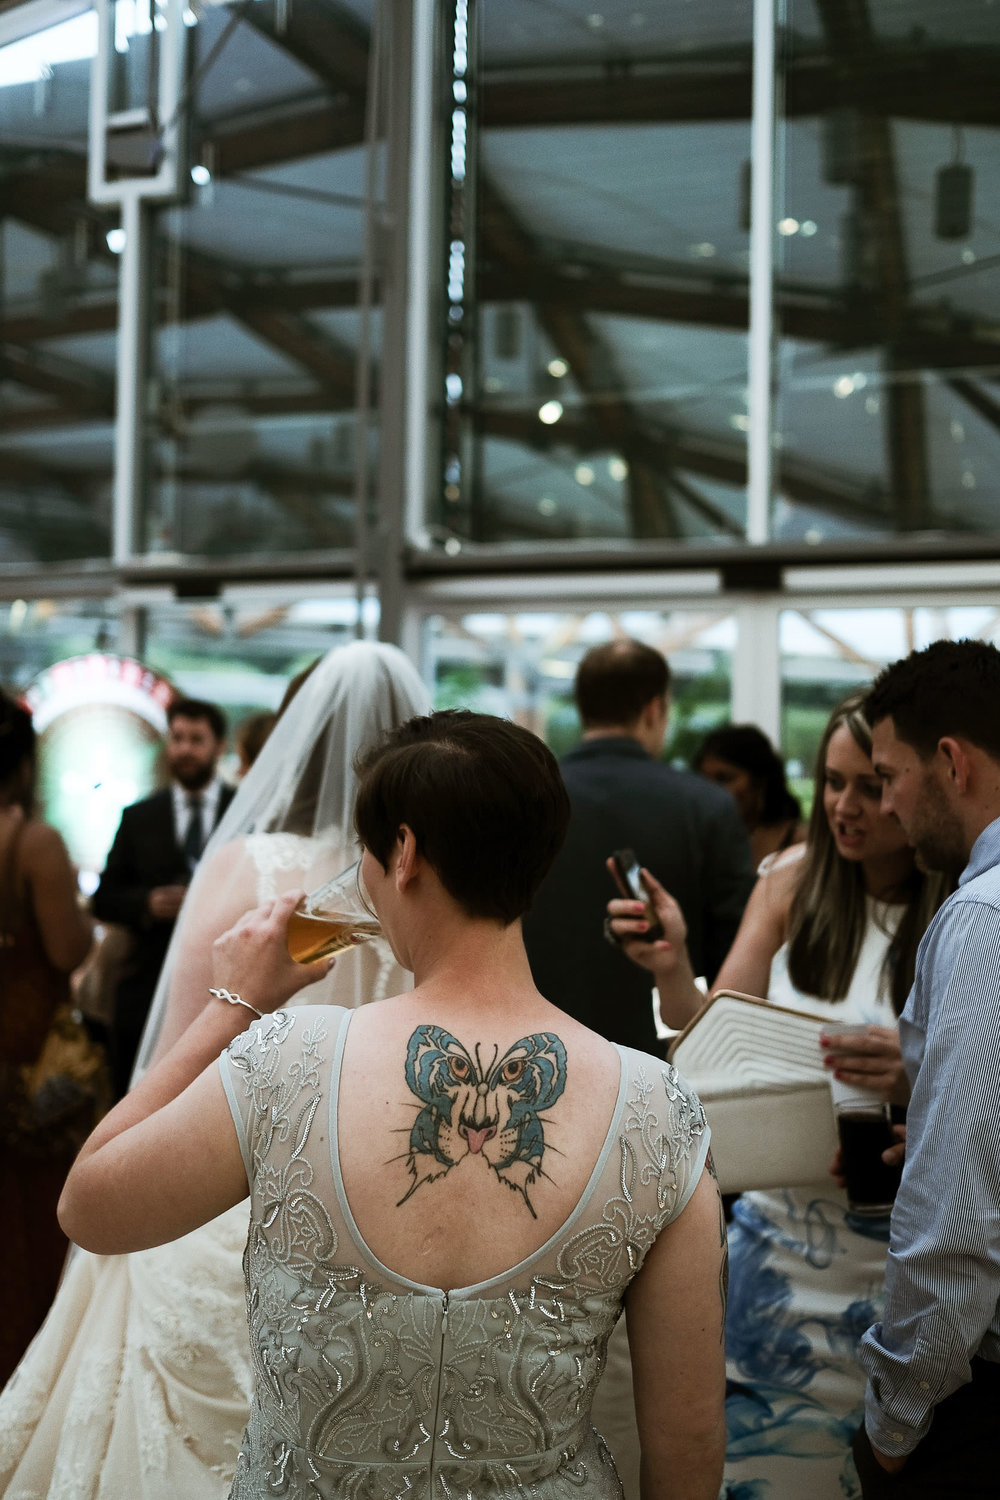 Close up of bridesmaid's colourful tattoo